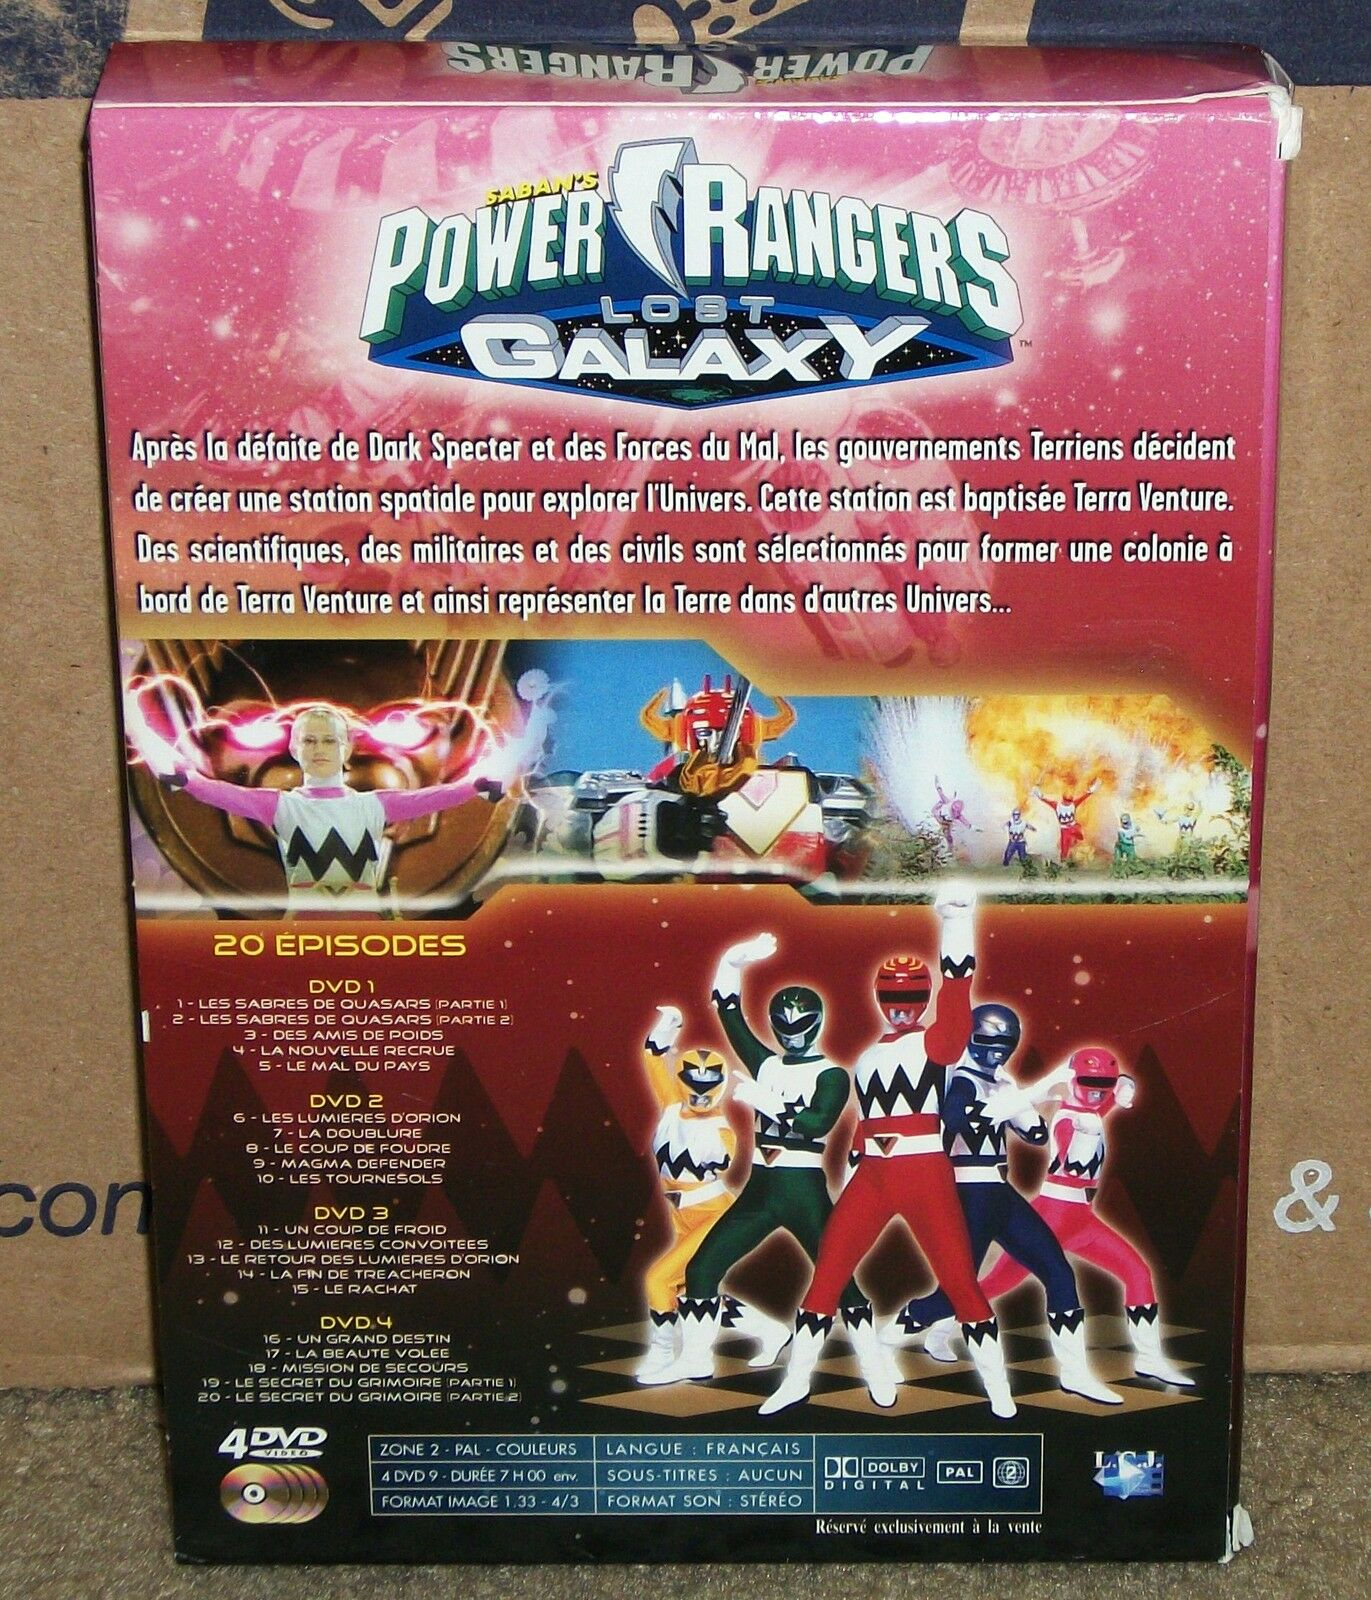 Power Rangers Lost Galaxy Season 1 (dvd Boxset) PAL French Audio Coffret |  eBay